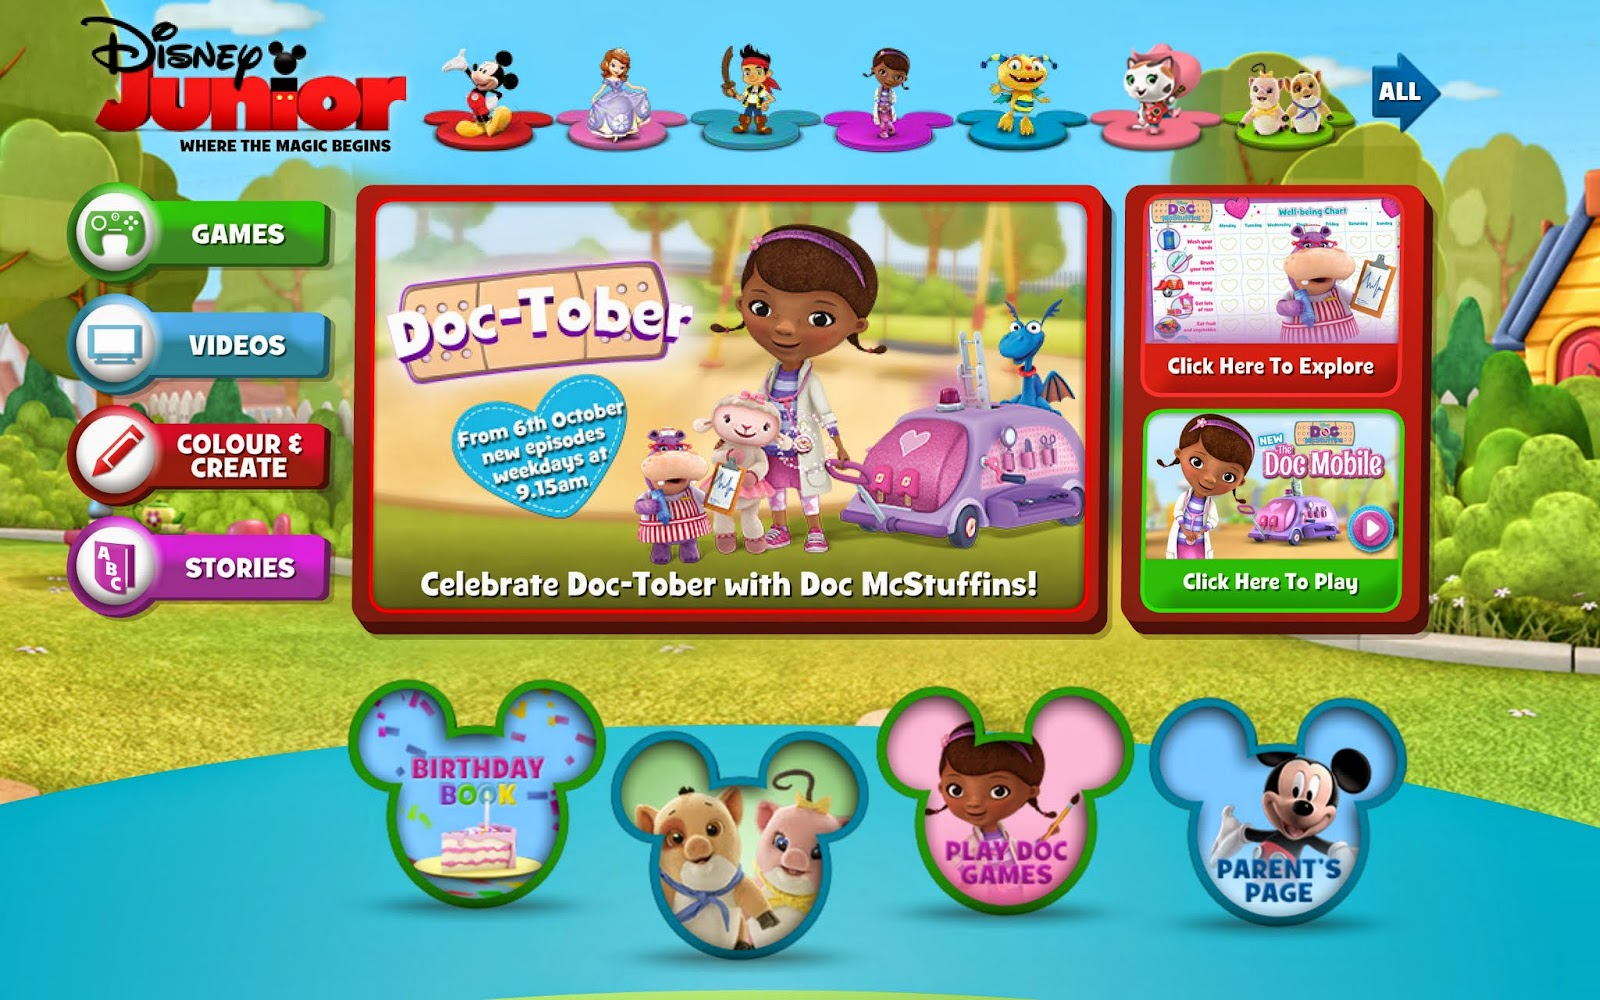 Learn with Play at Home Doctober on Disney Junior Promoting